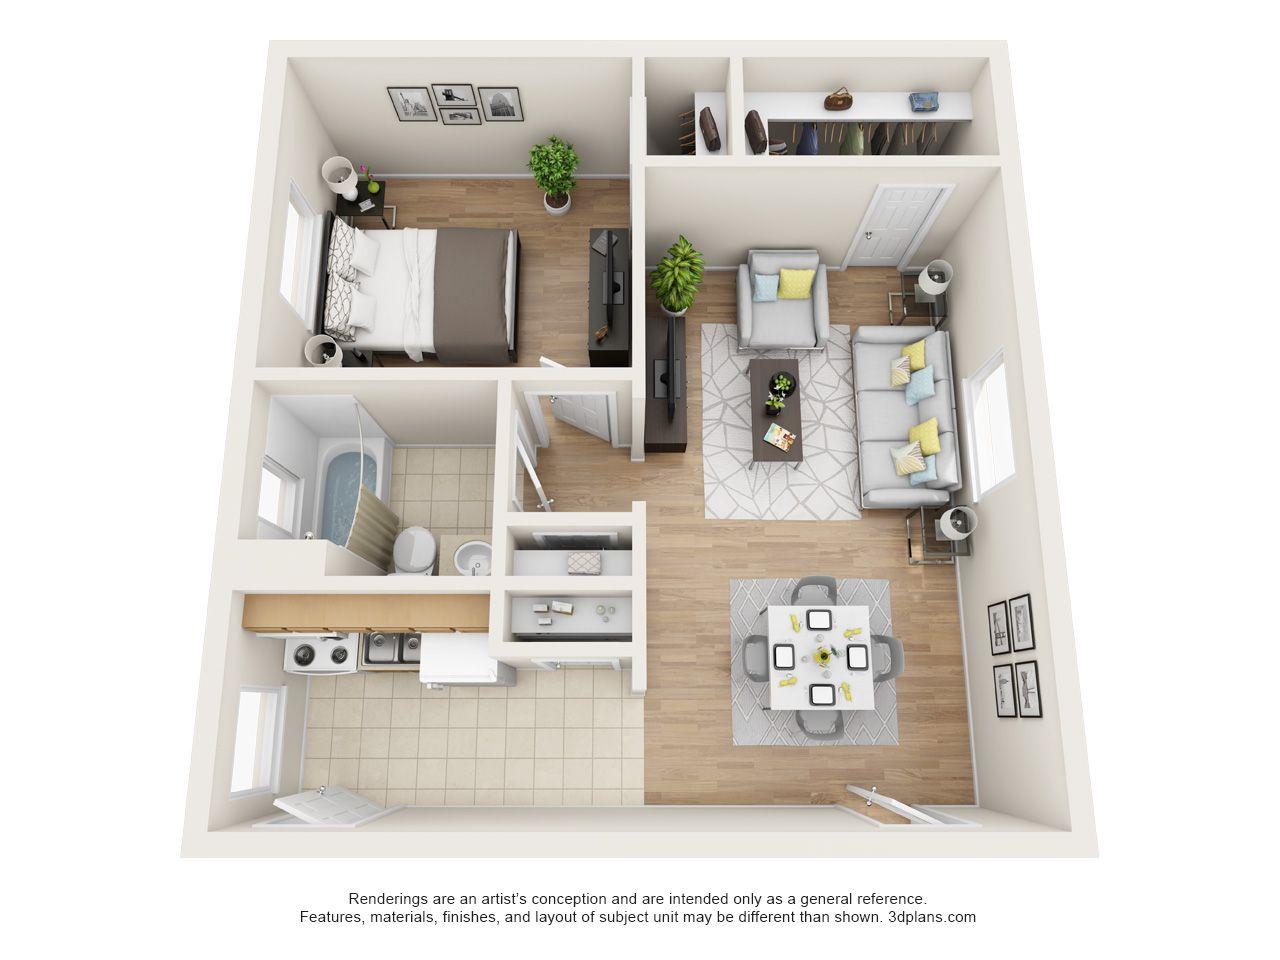 Shelton Apartment One Bedroom With 650sq Ft Large Bedroom With Walk In Closets And Open Floor Plan Small House Plans Apartment Layout House Plans